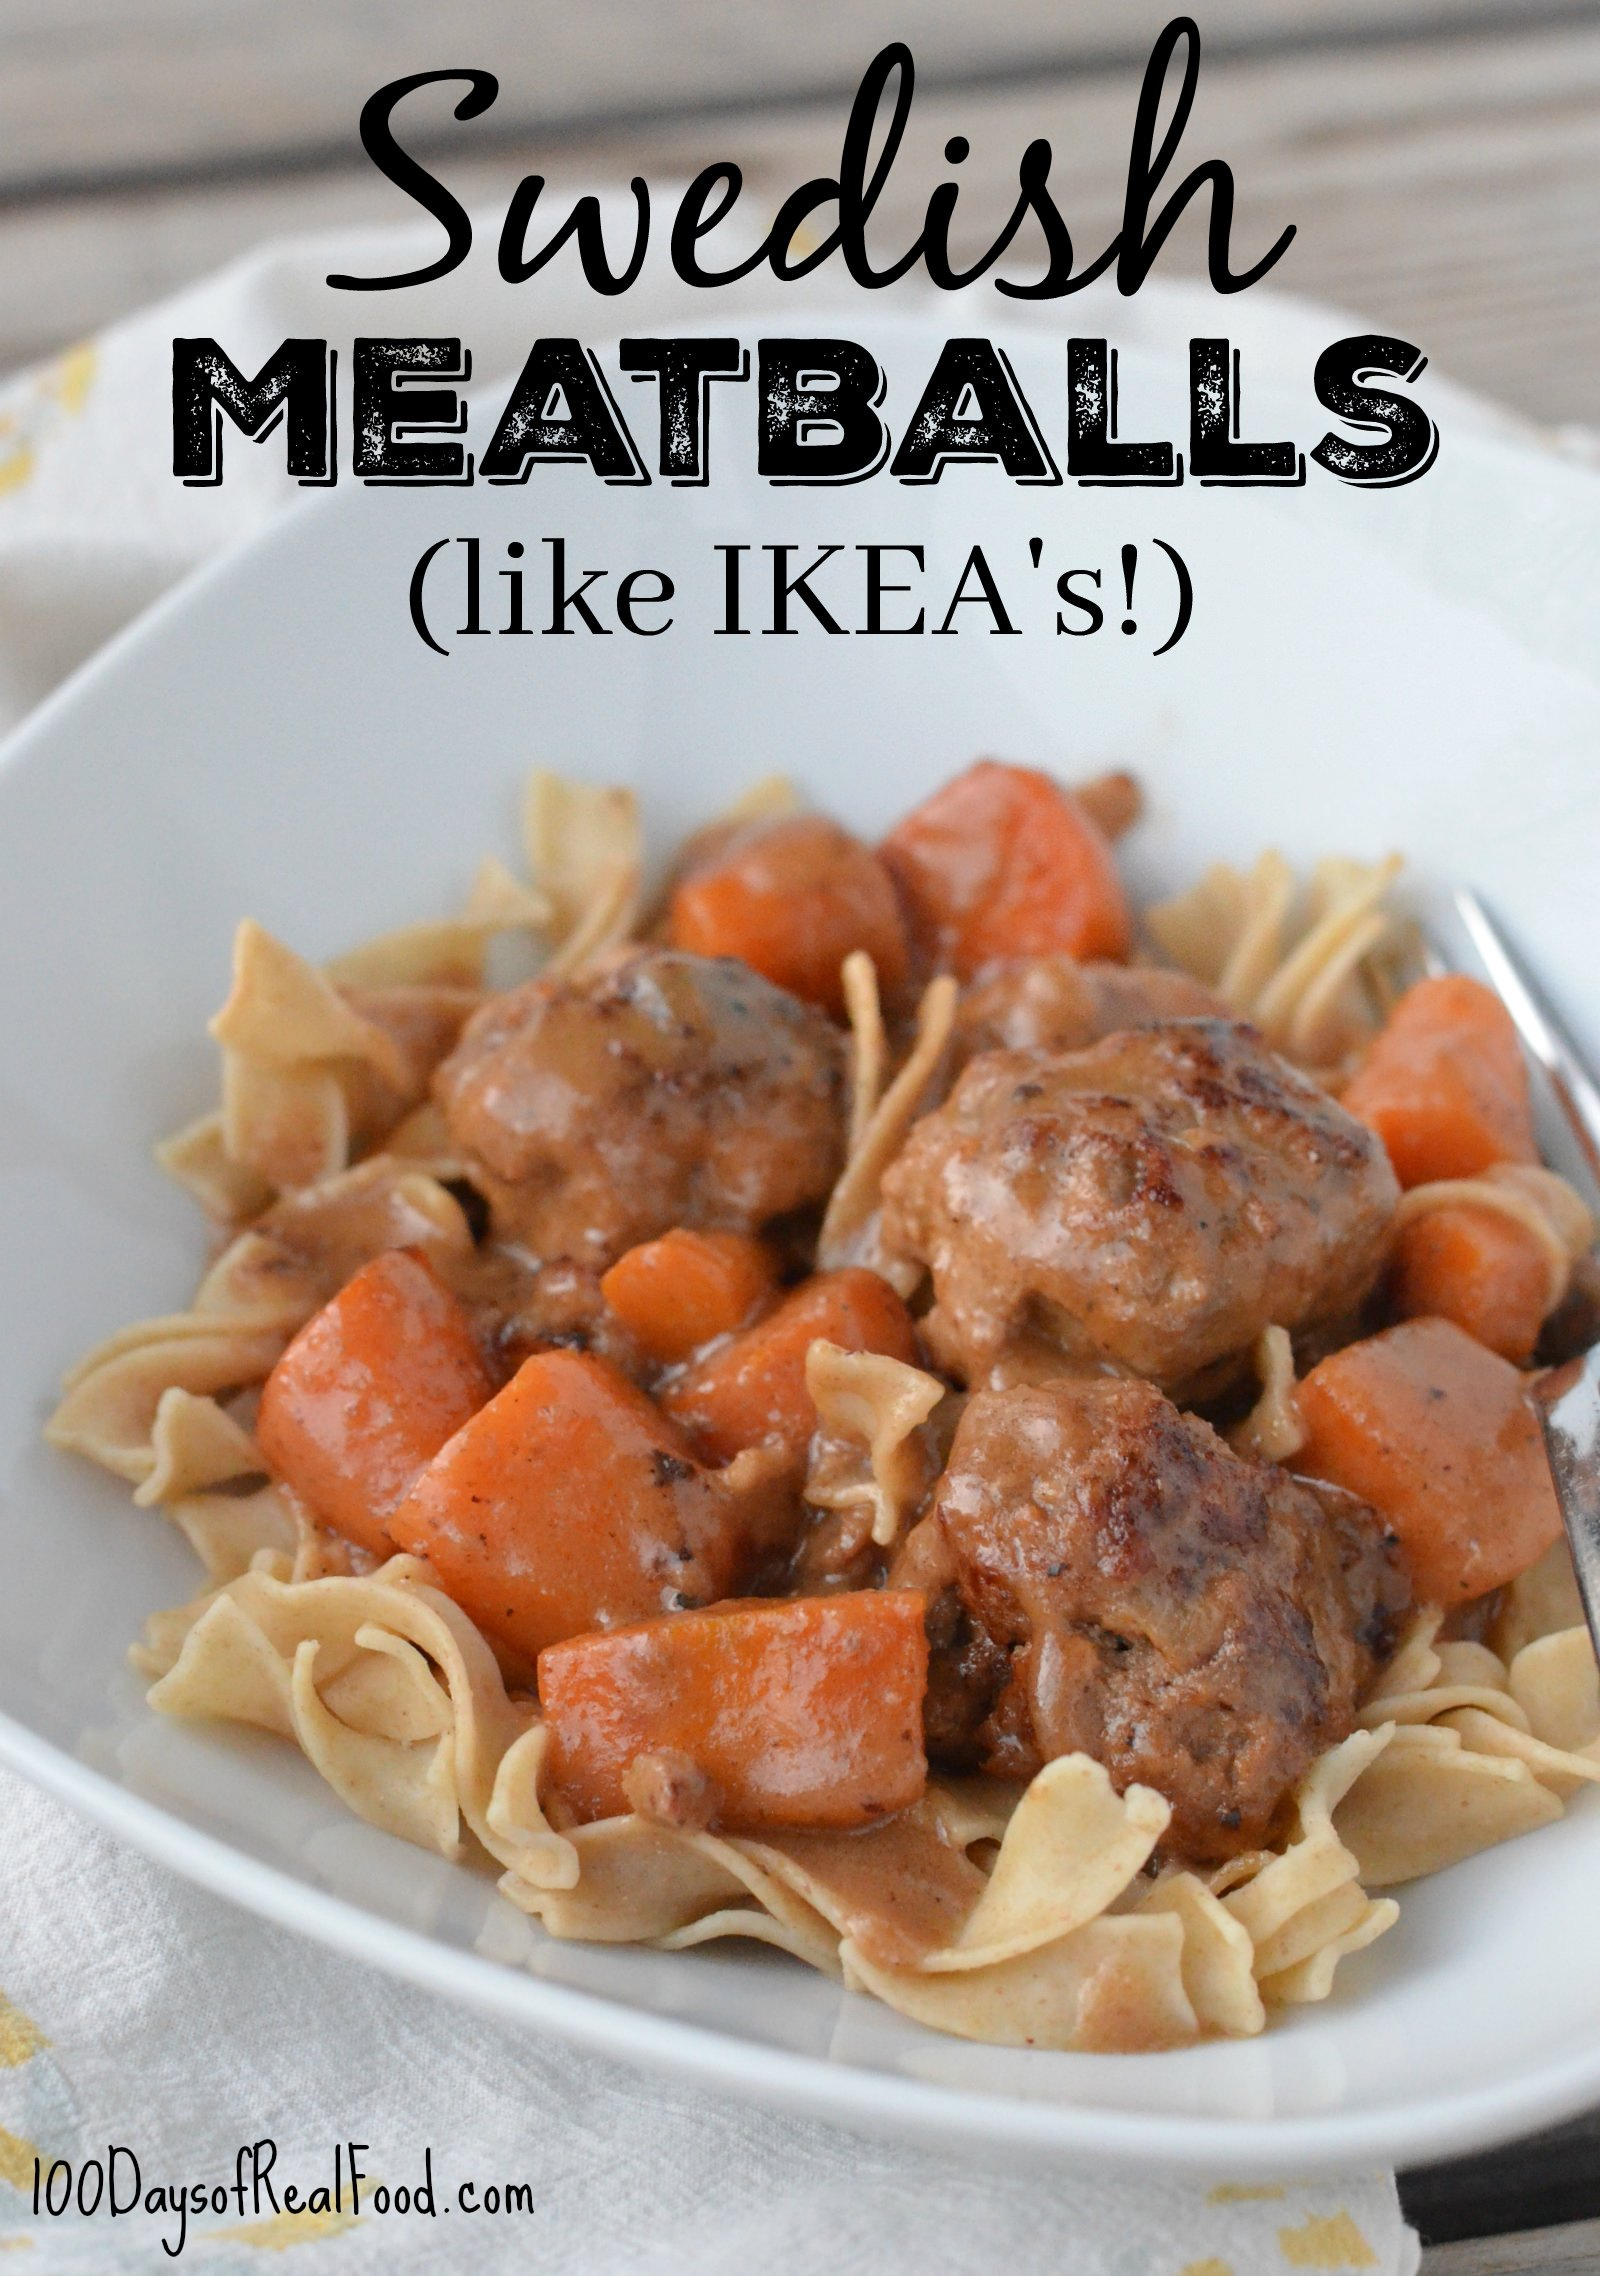 Top 10 Posts 2017: Swedish Meatballs (like IKEA's!)